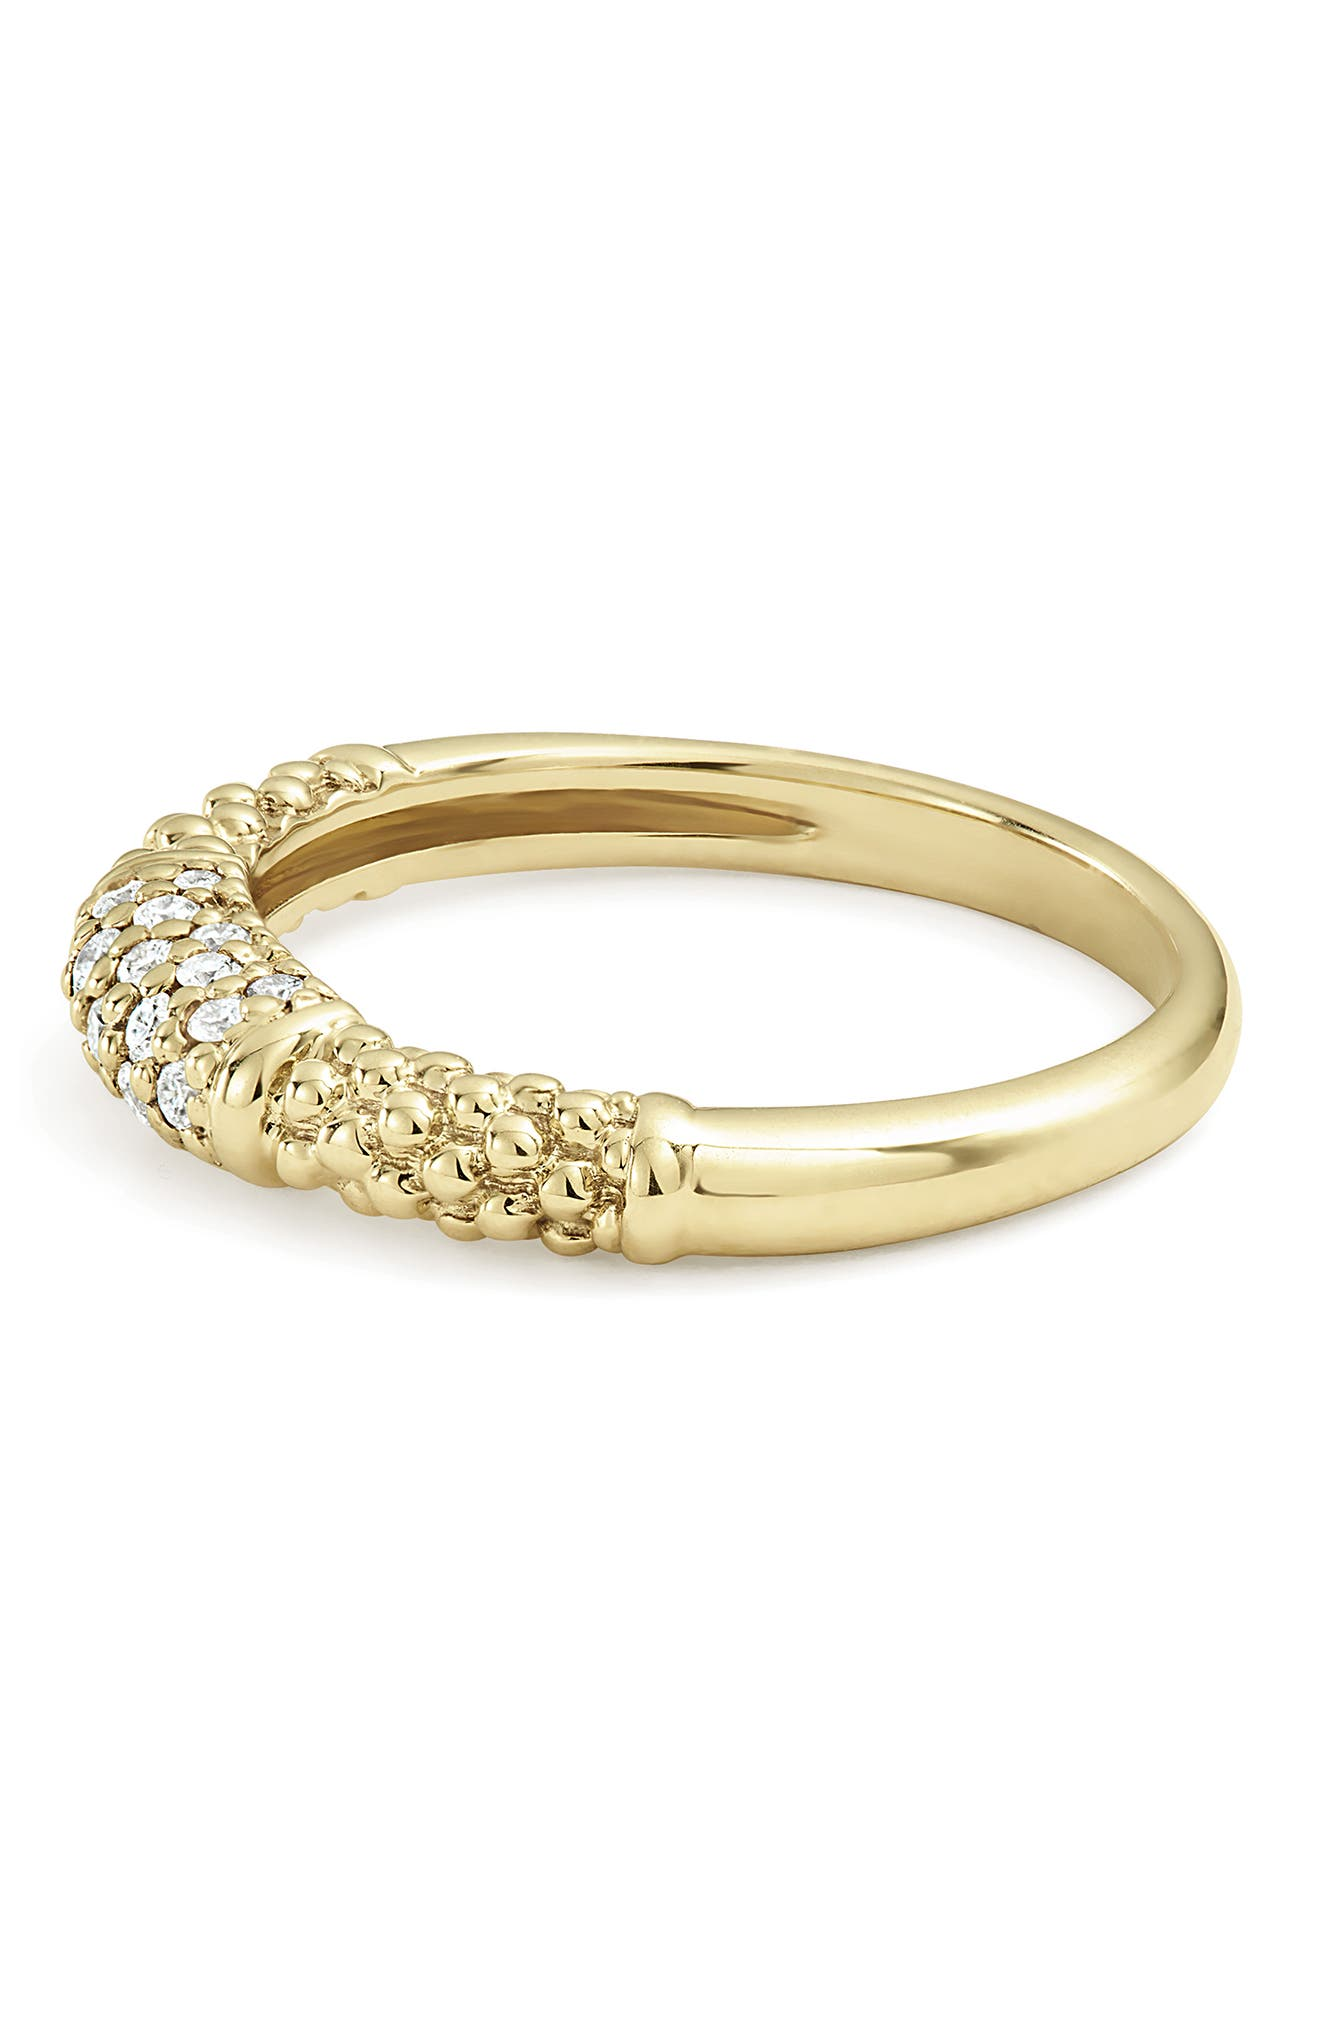 Caviar Diamond Ring,                             Alternate thumbnail 3, color,                             GOLD